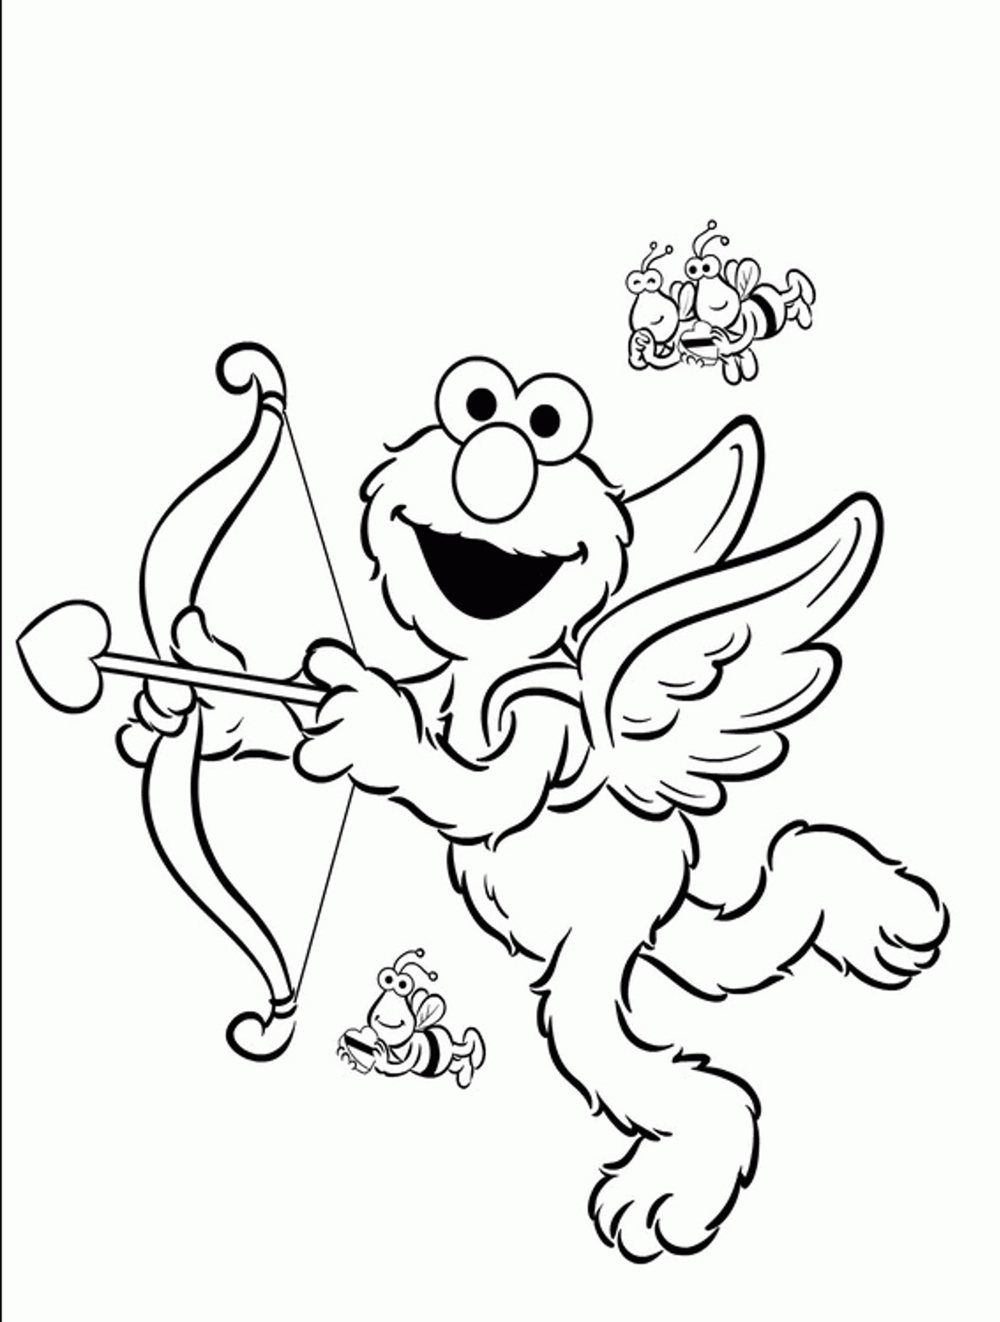 elmo-coloring-page-0022-q1